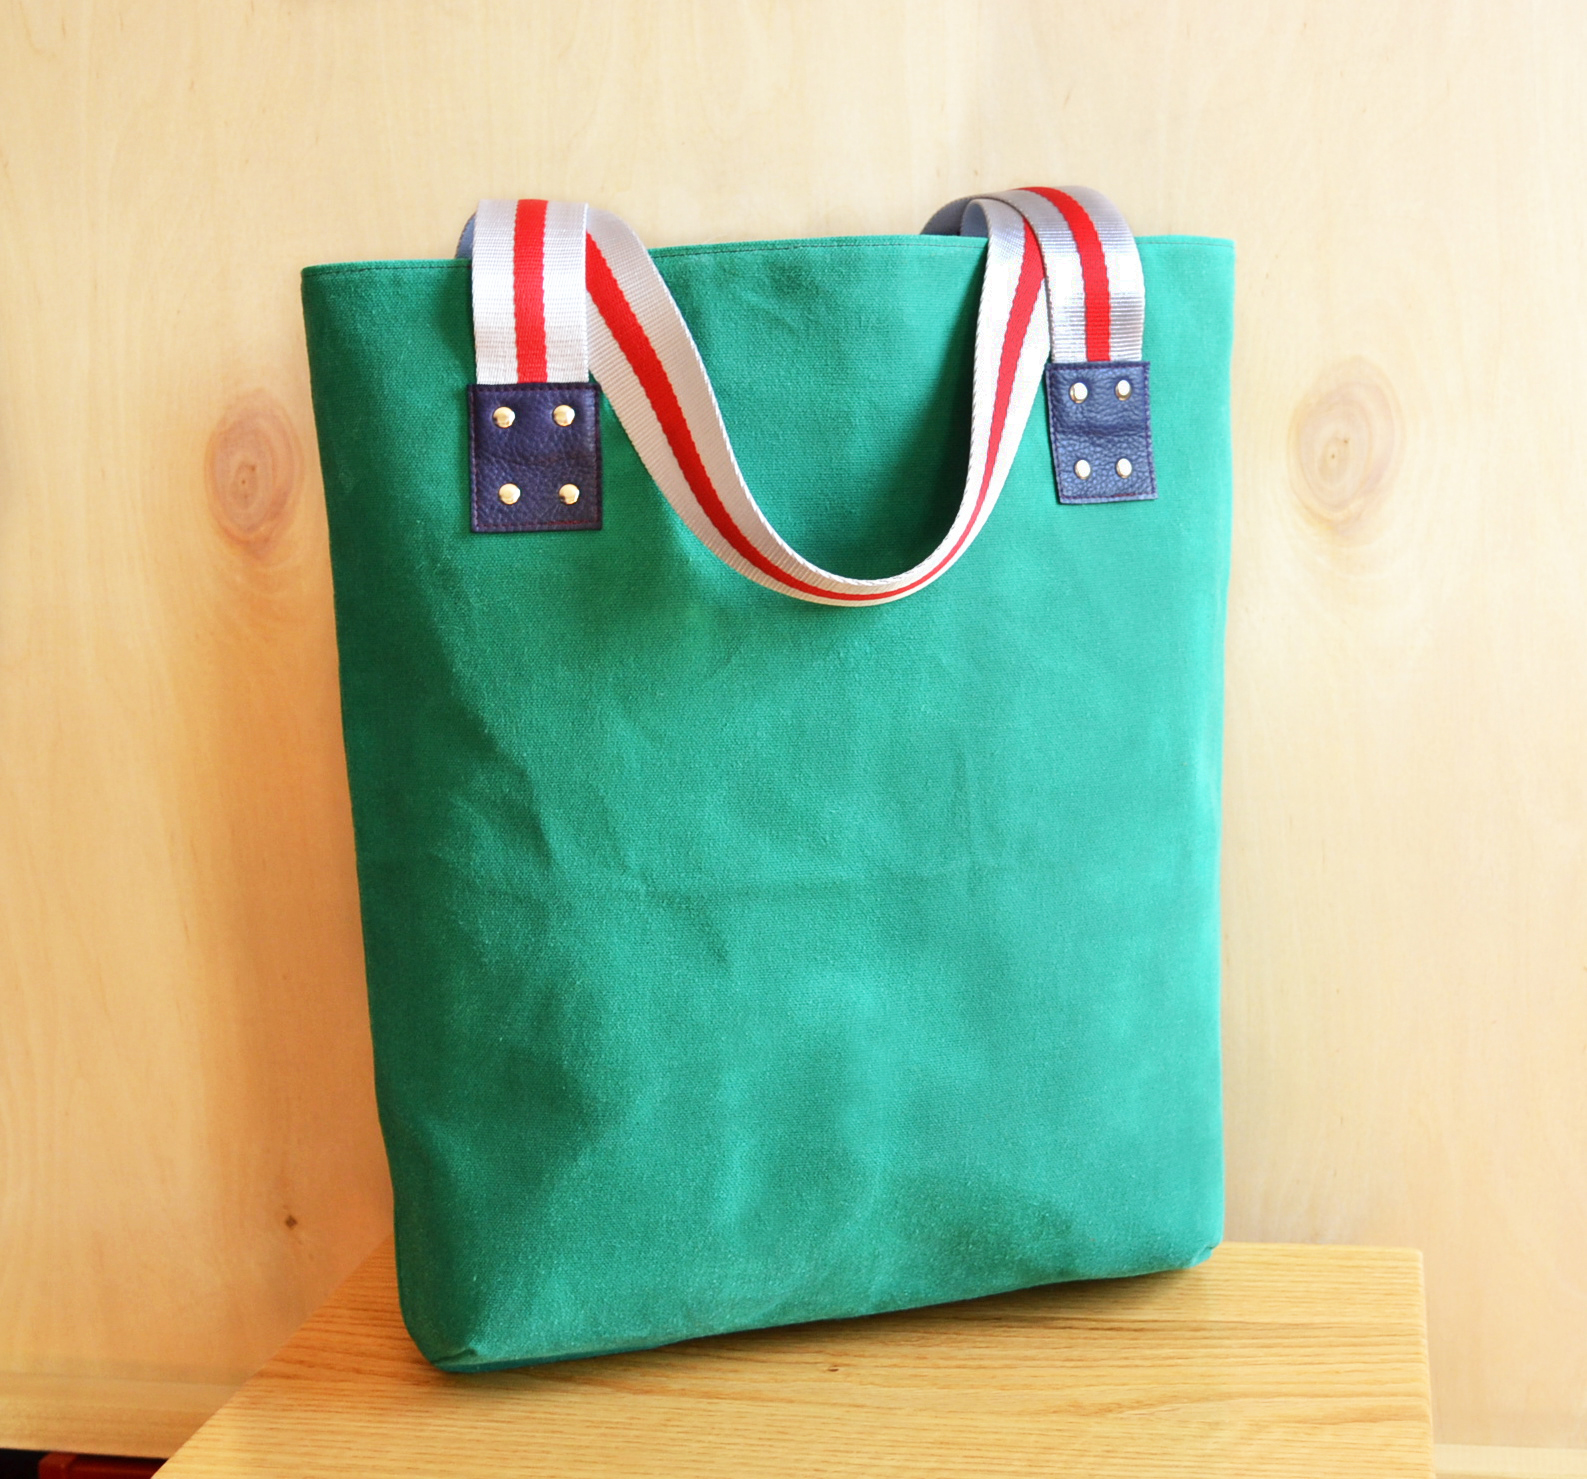 Waxed Canvas LF Market Tote in Teal